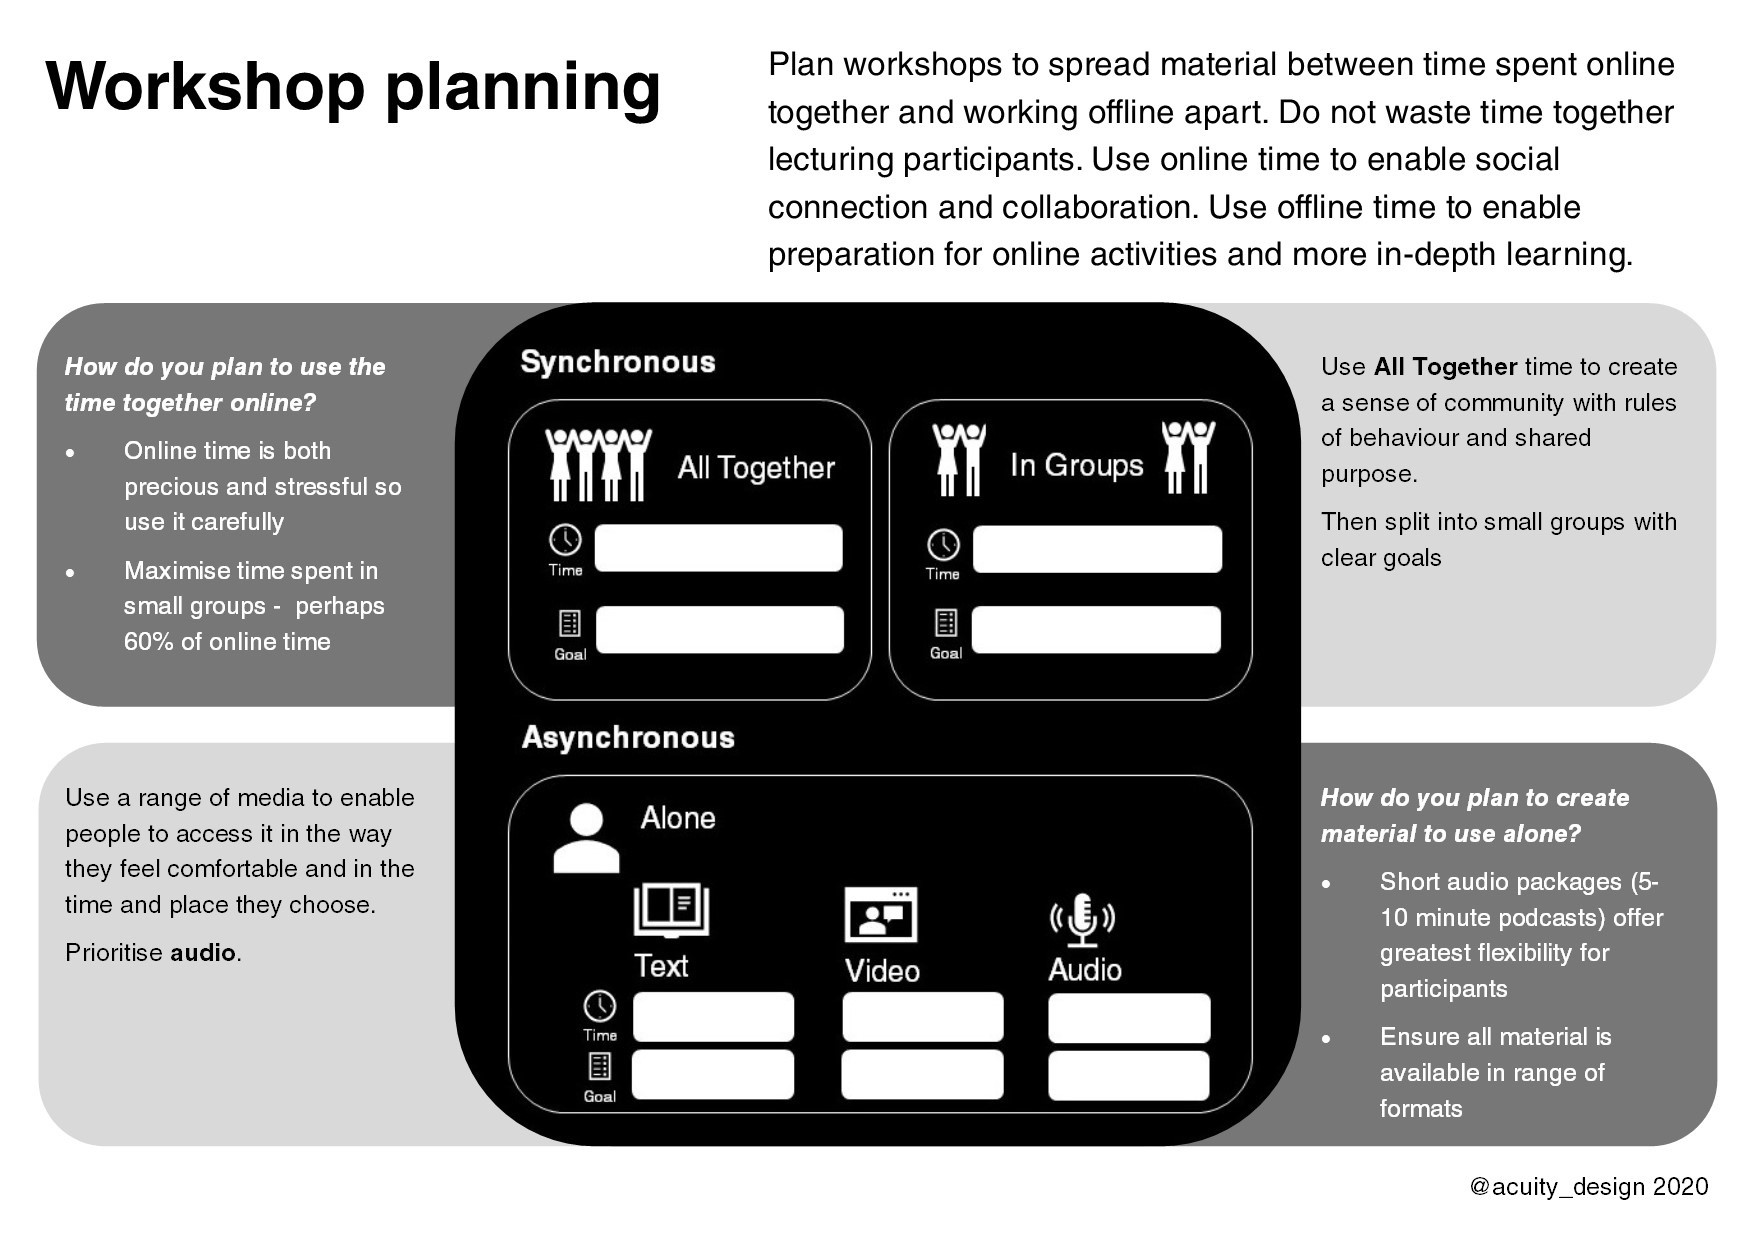 A4 version of B&W diagram with added sections of questions about workshop planning